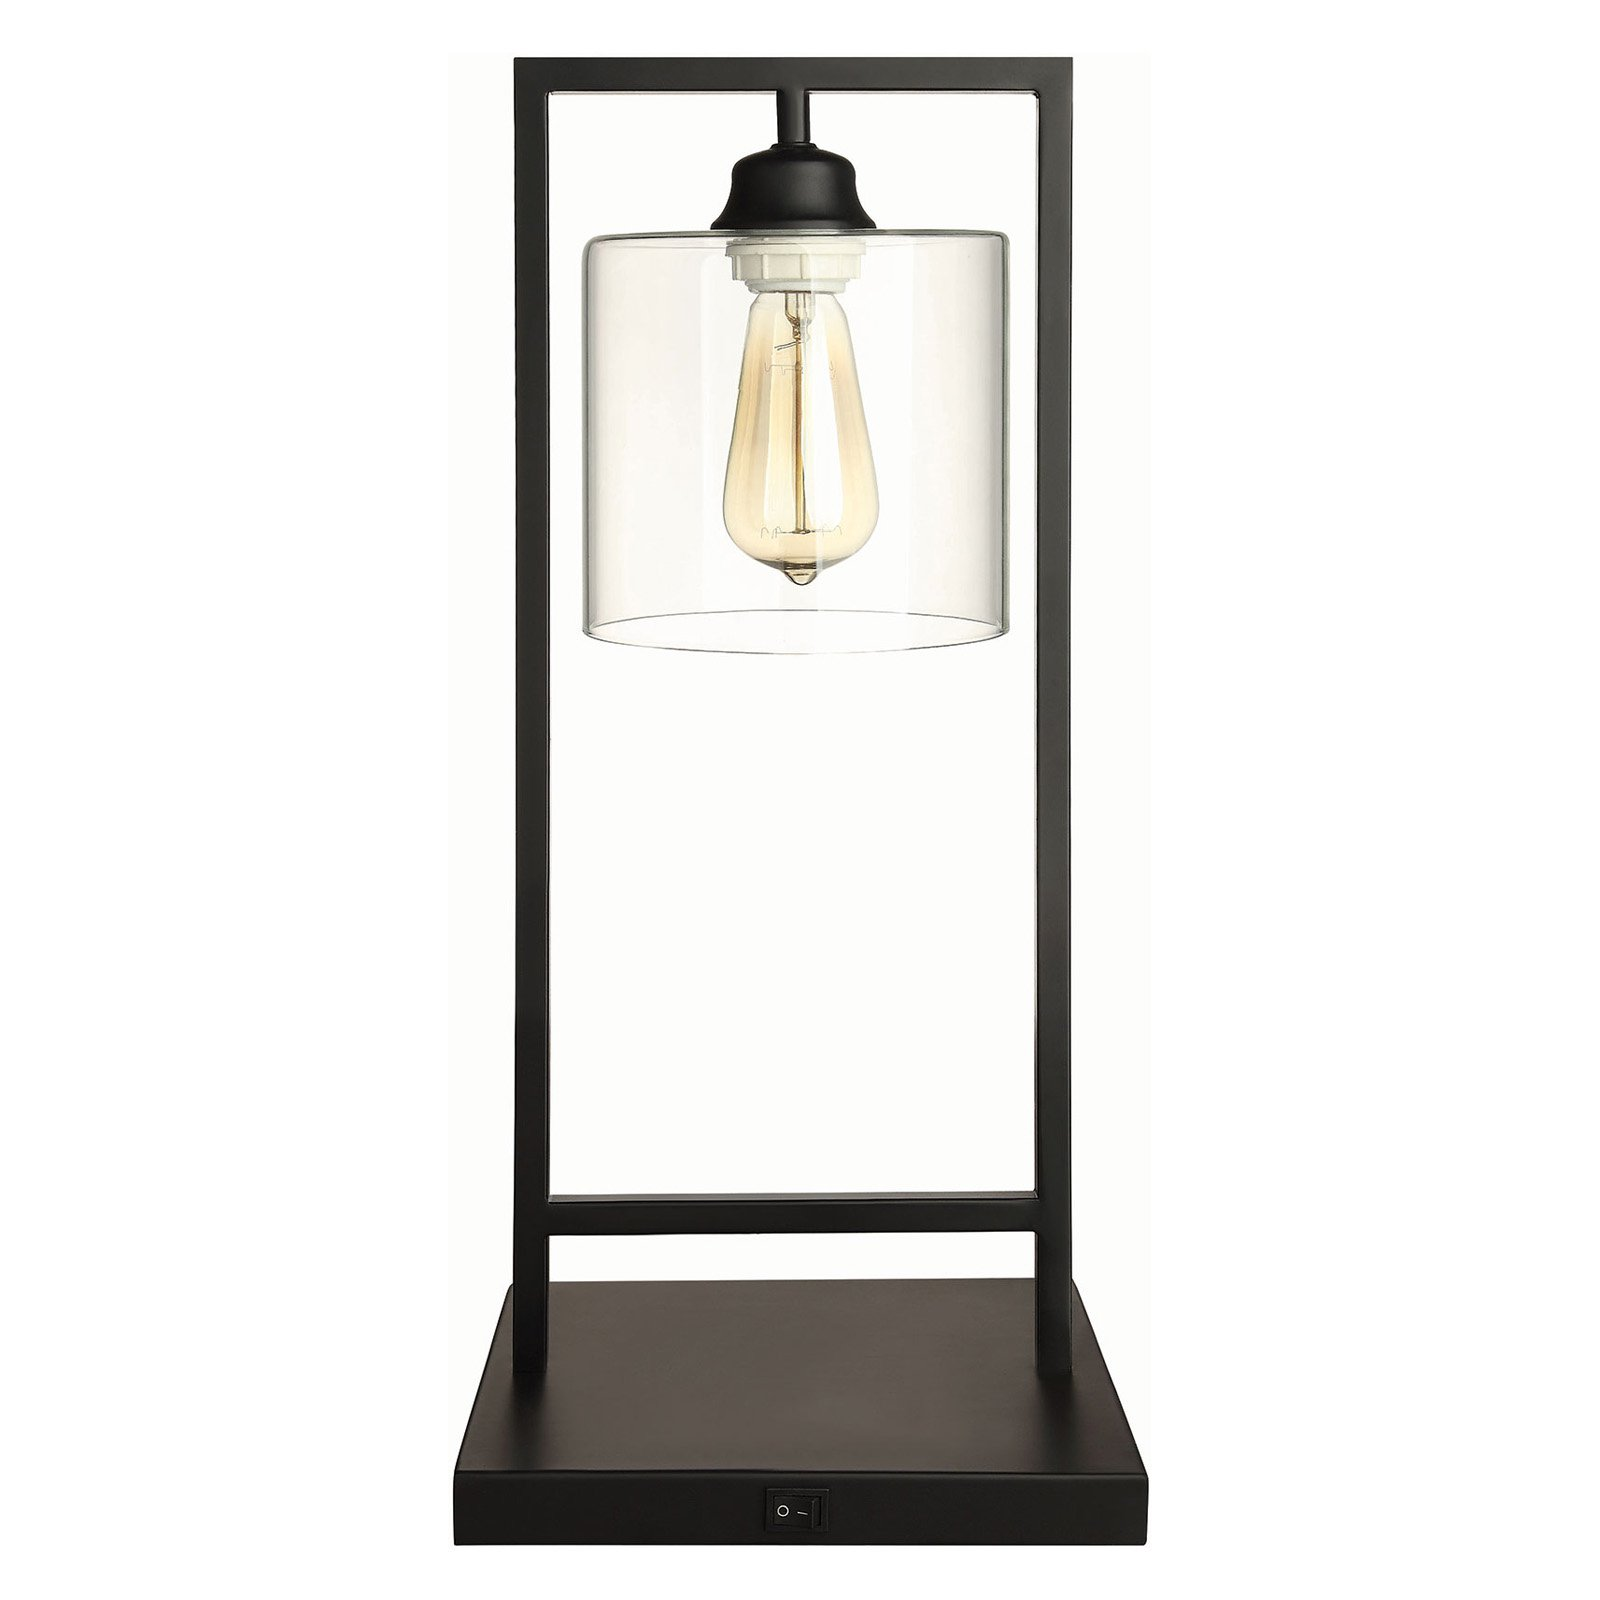 Coaster Company Table Lamp with Industrial Edison Light Design by Coaster Company